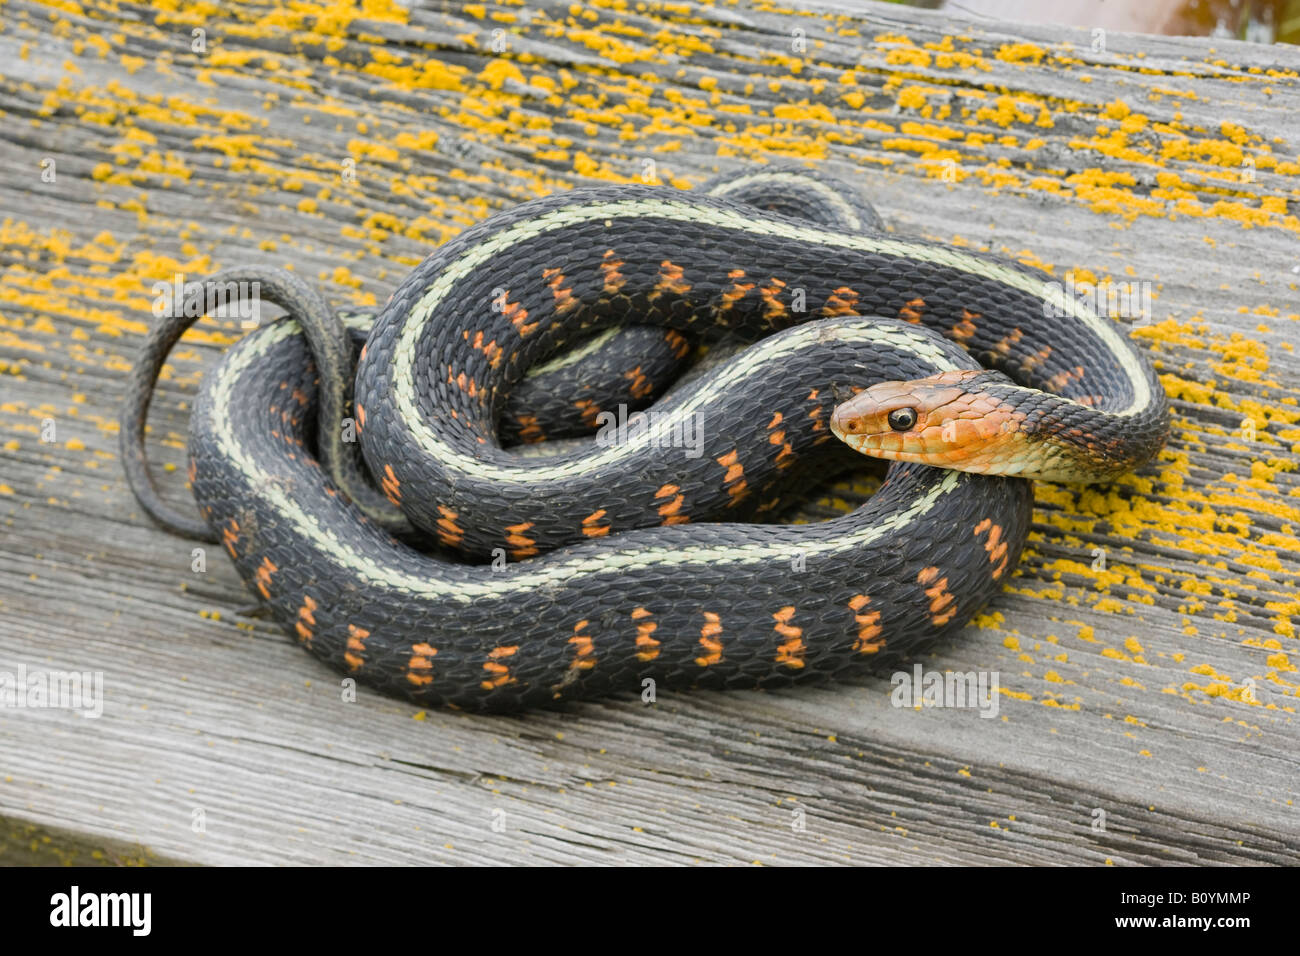 Couleuvre tachetée rouge Thamnophis sirtalis concinnus Wilamette Valley Oregon United States Photo Stock